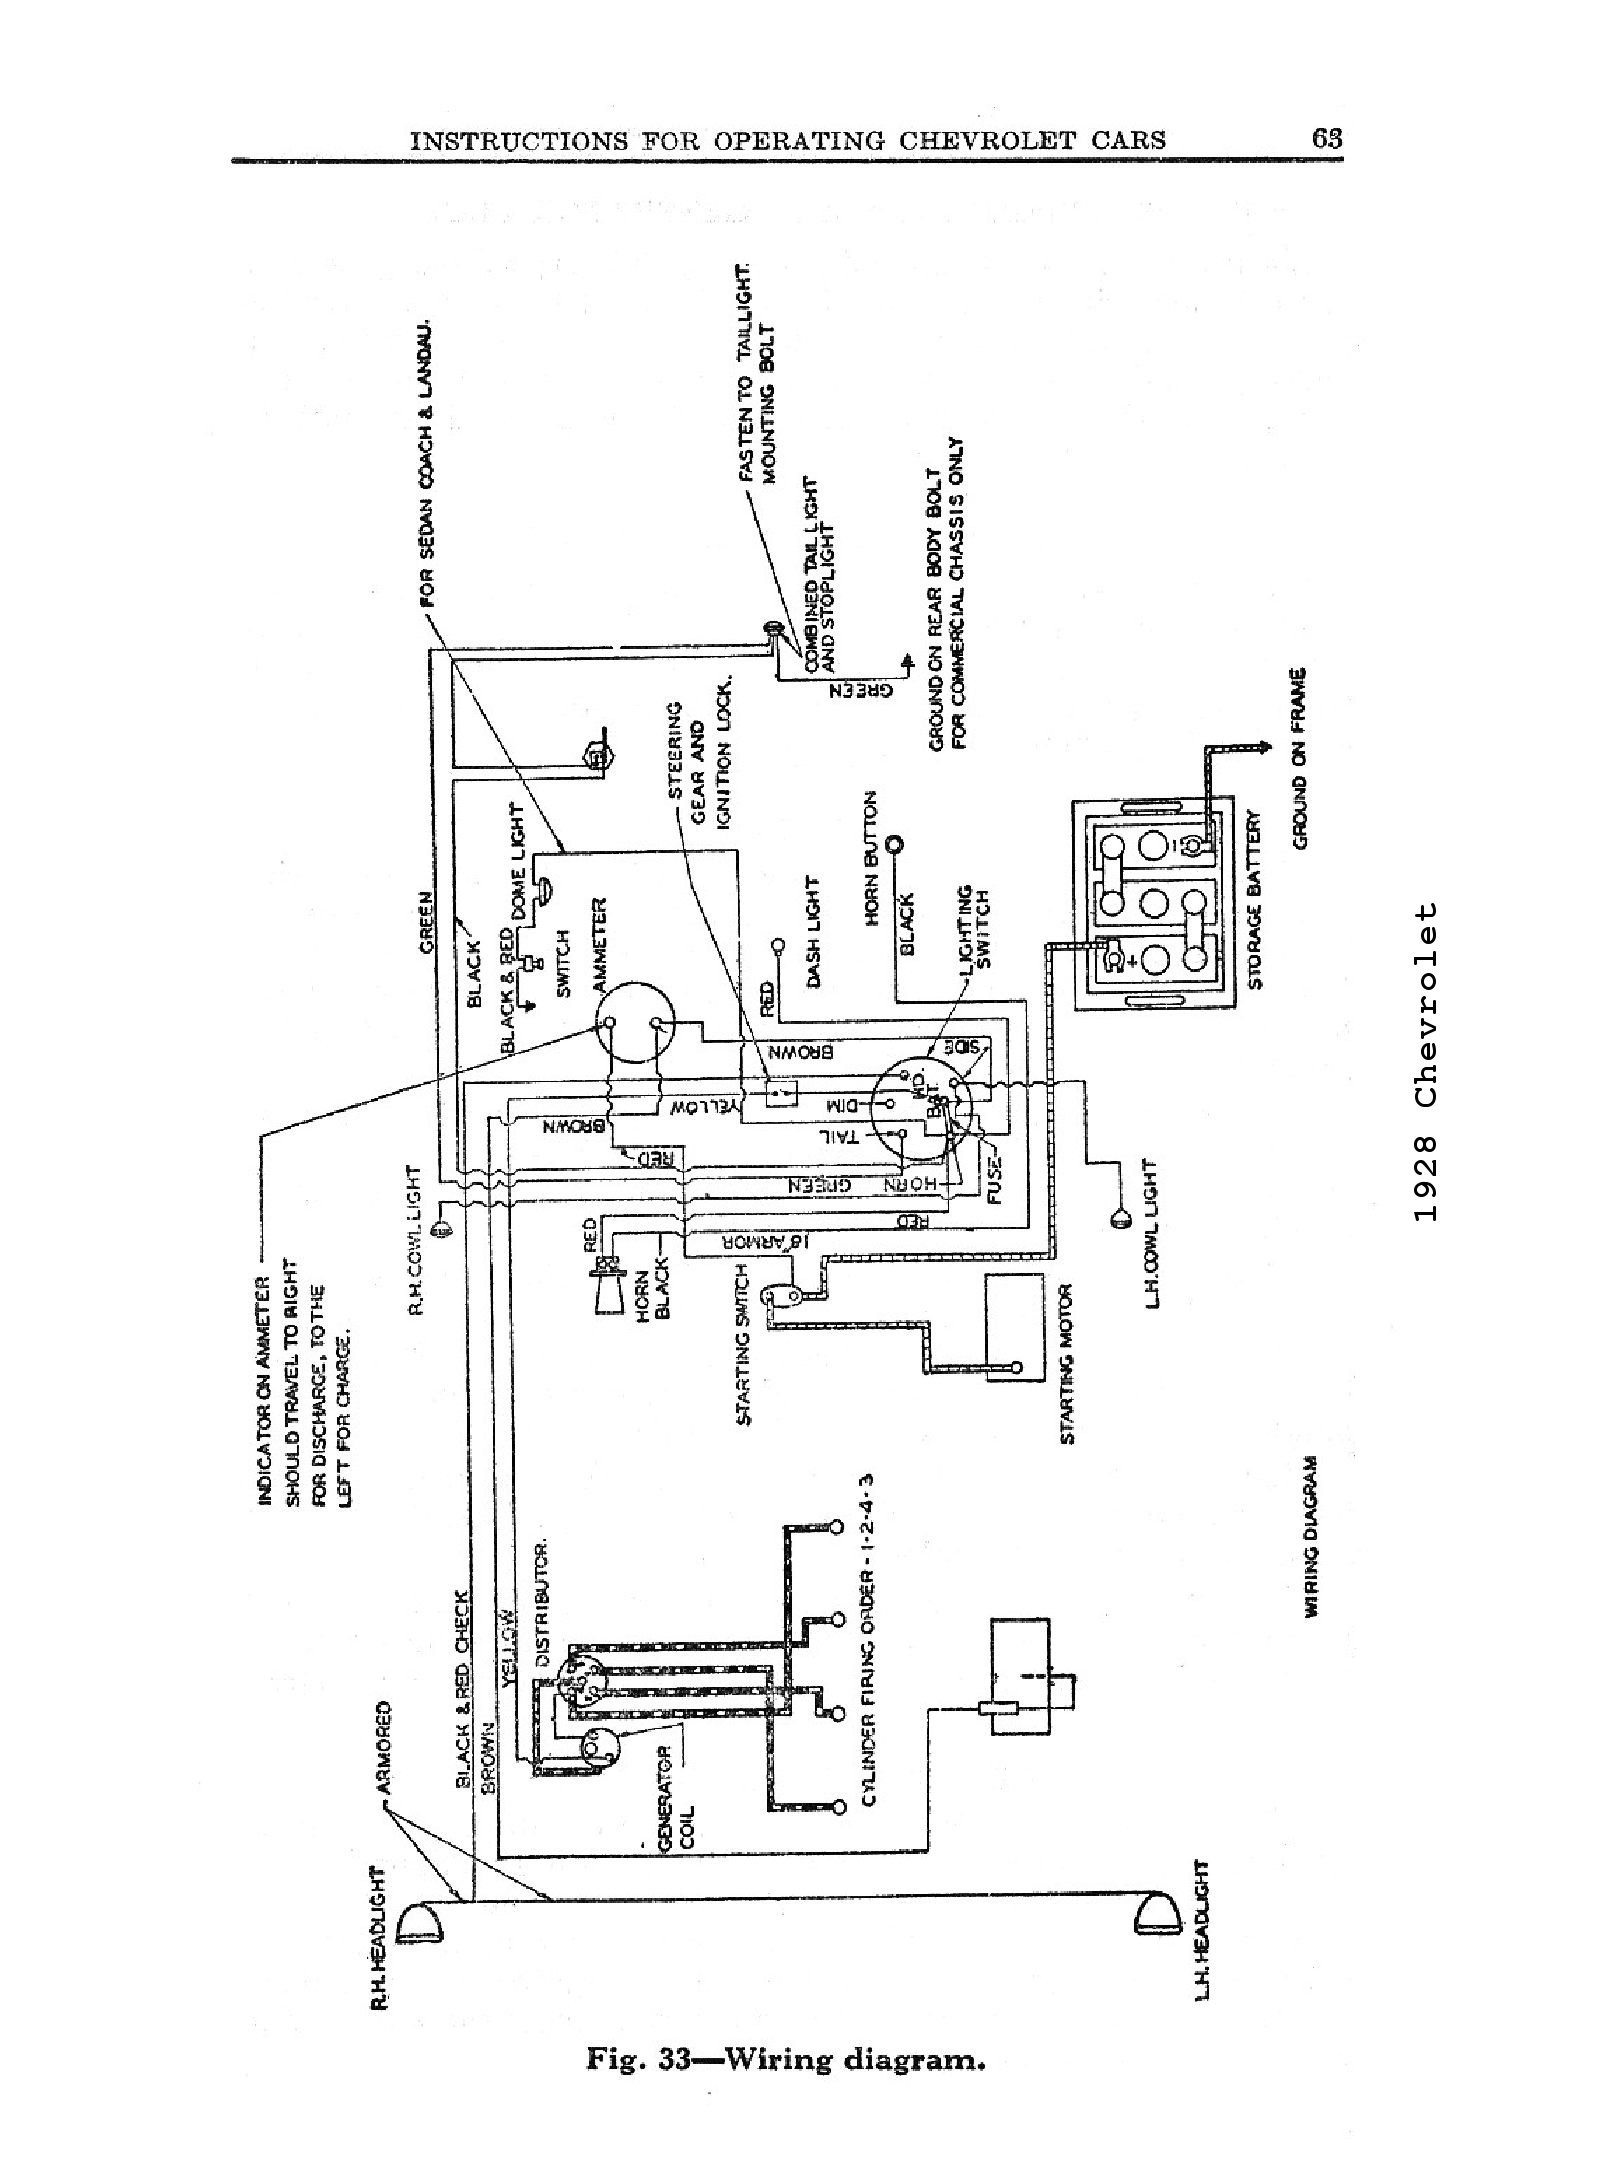 Wiring Diagram For 1960 Chevy Truck Books Of 1953 Rh Detoxicrecenze Com